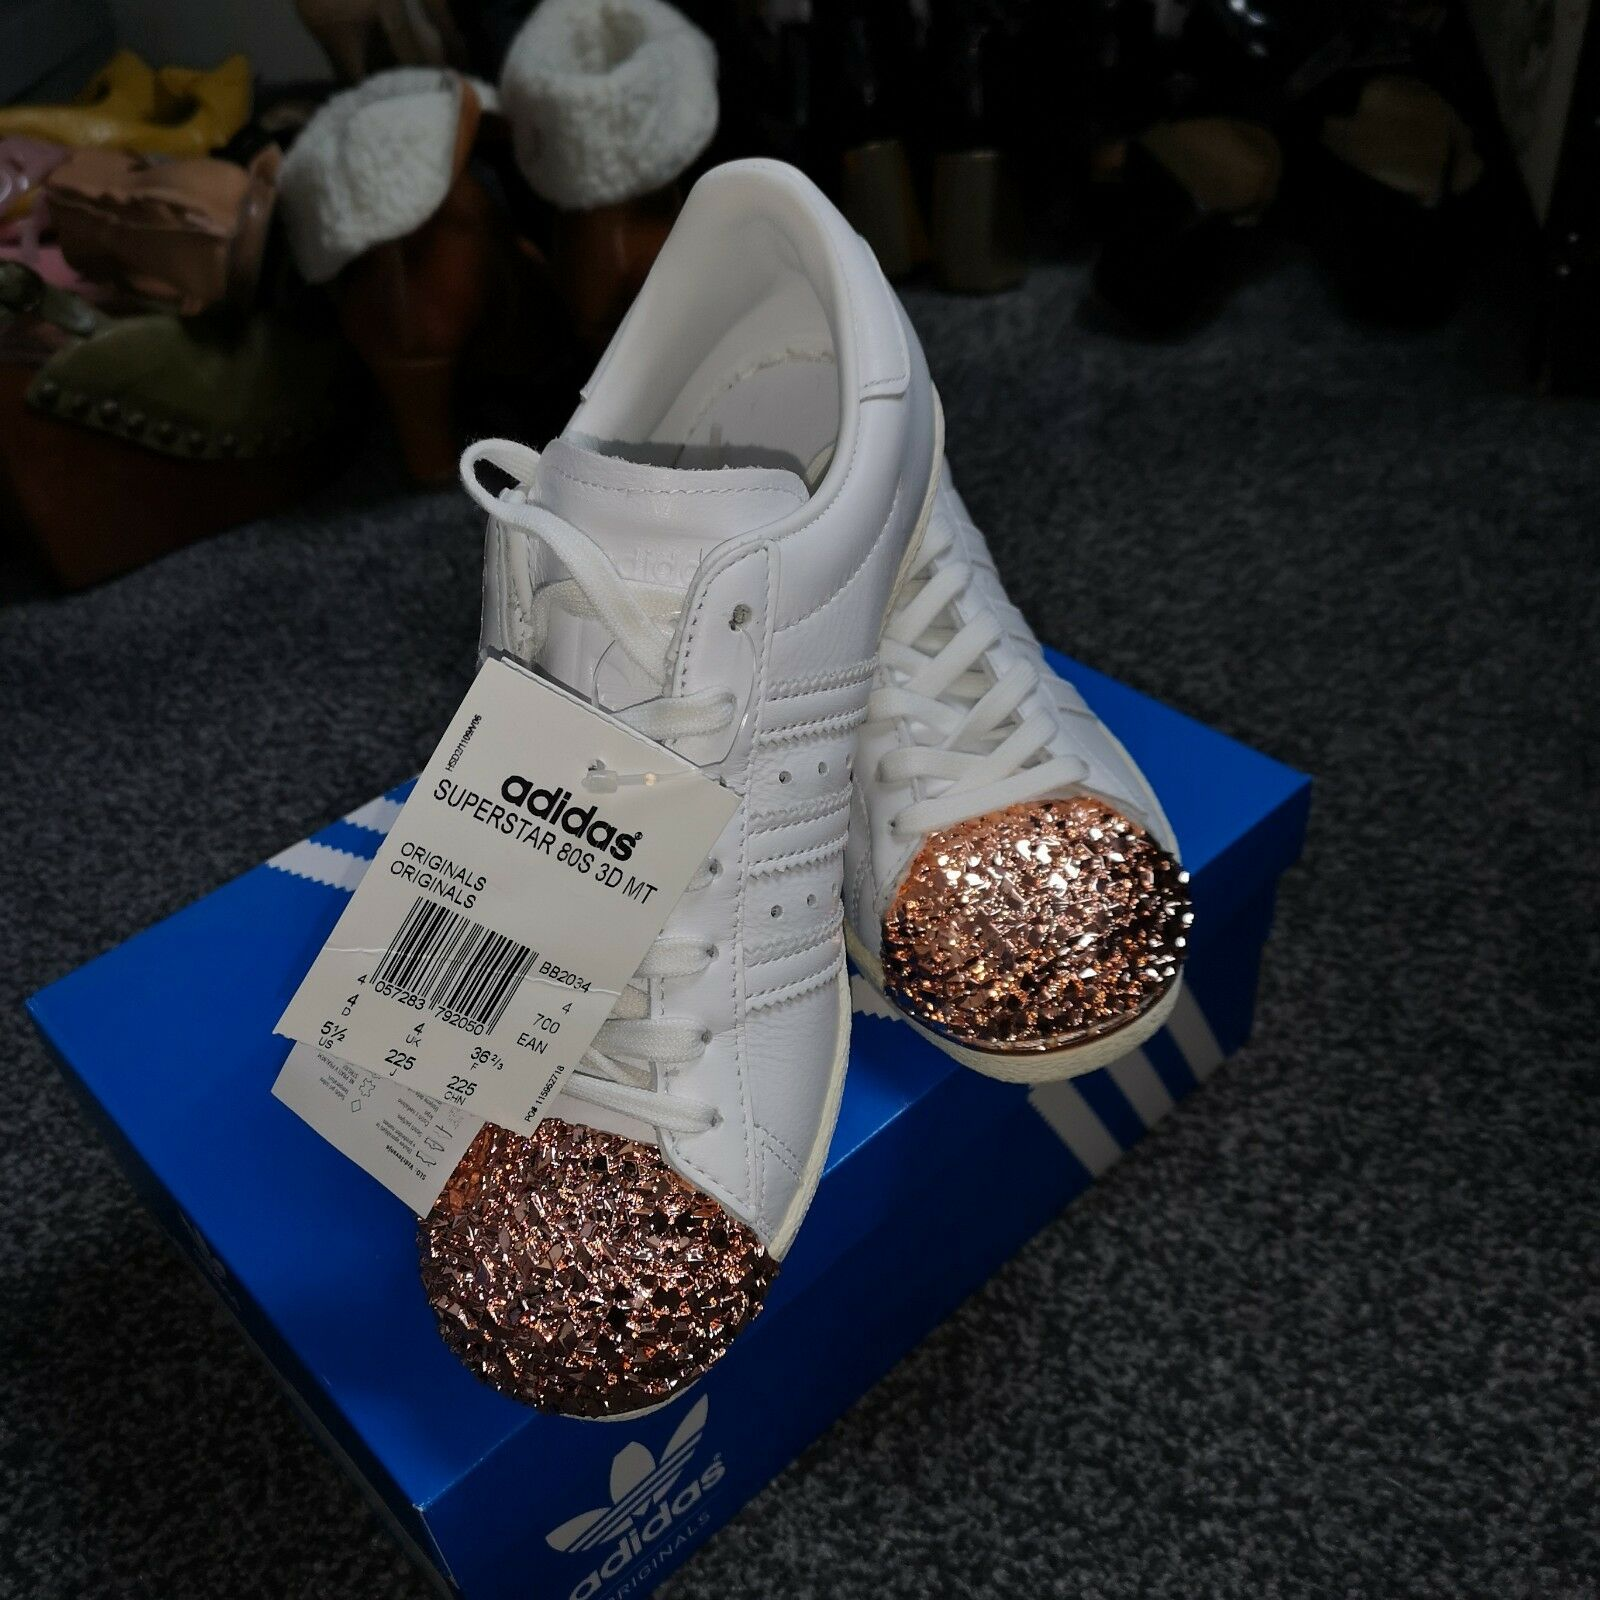 Adidas Trainers Tags Size 4 New With Tags Trainers 16e9de Yiling